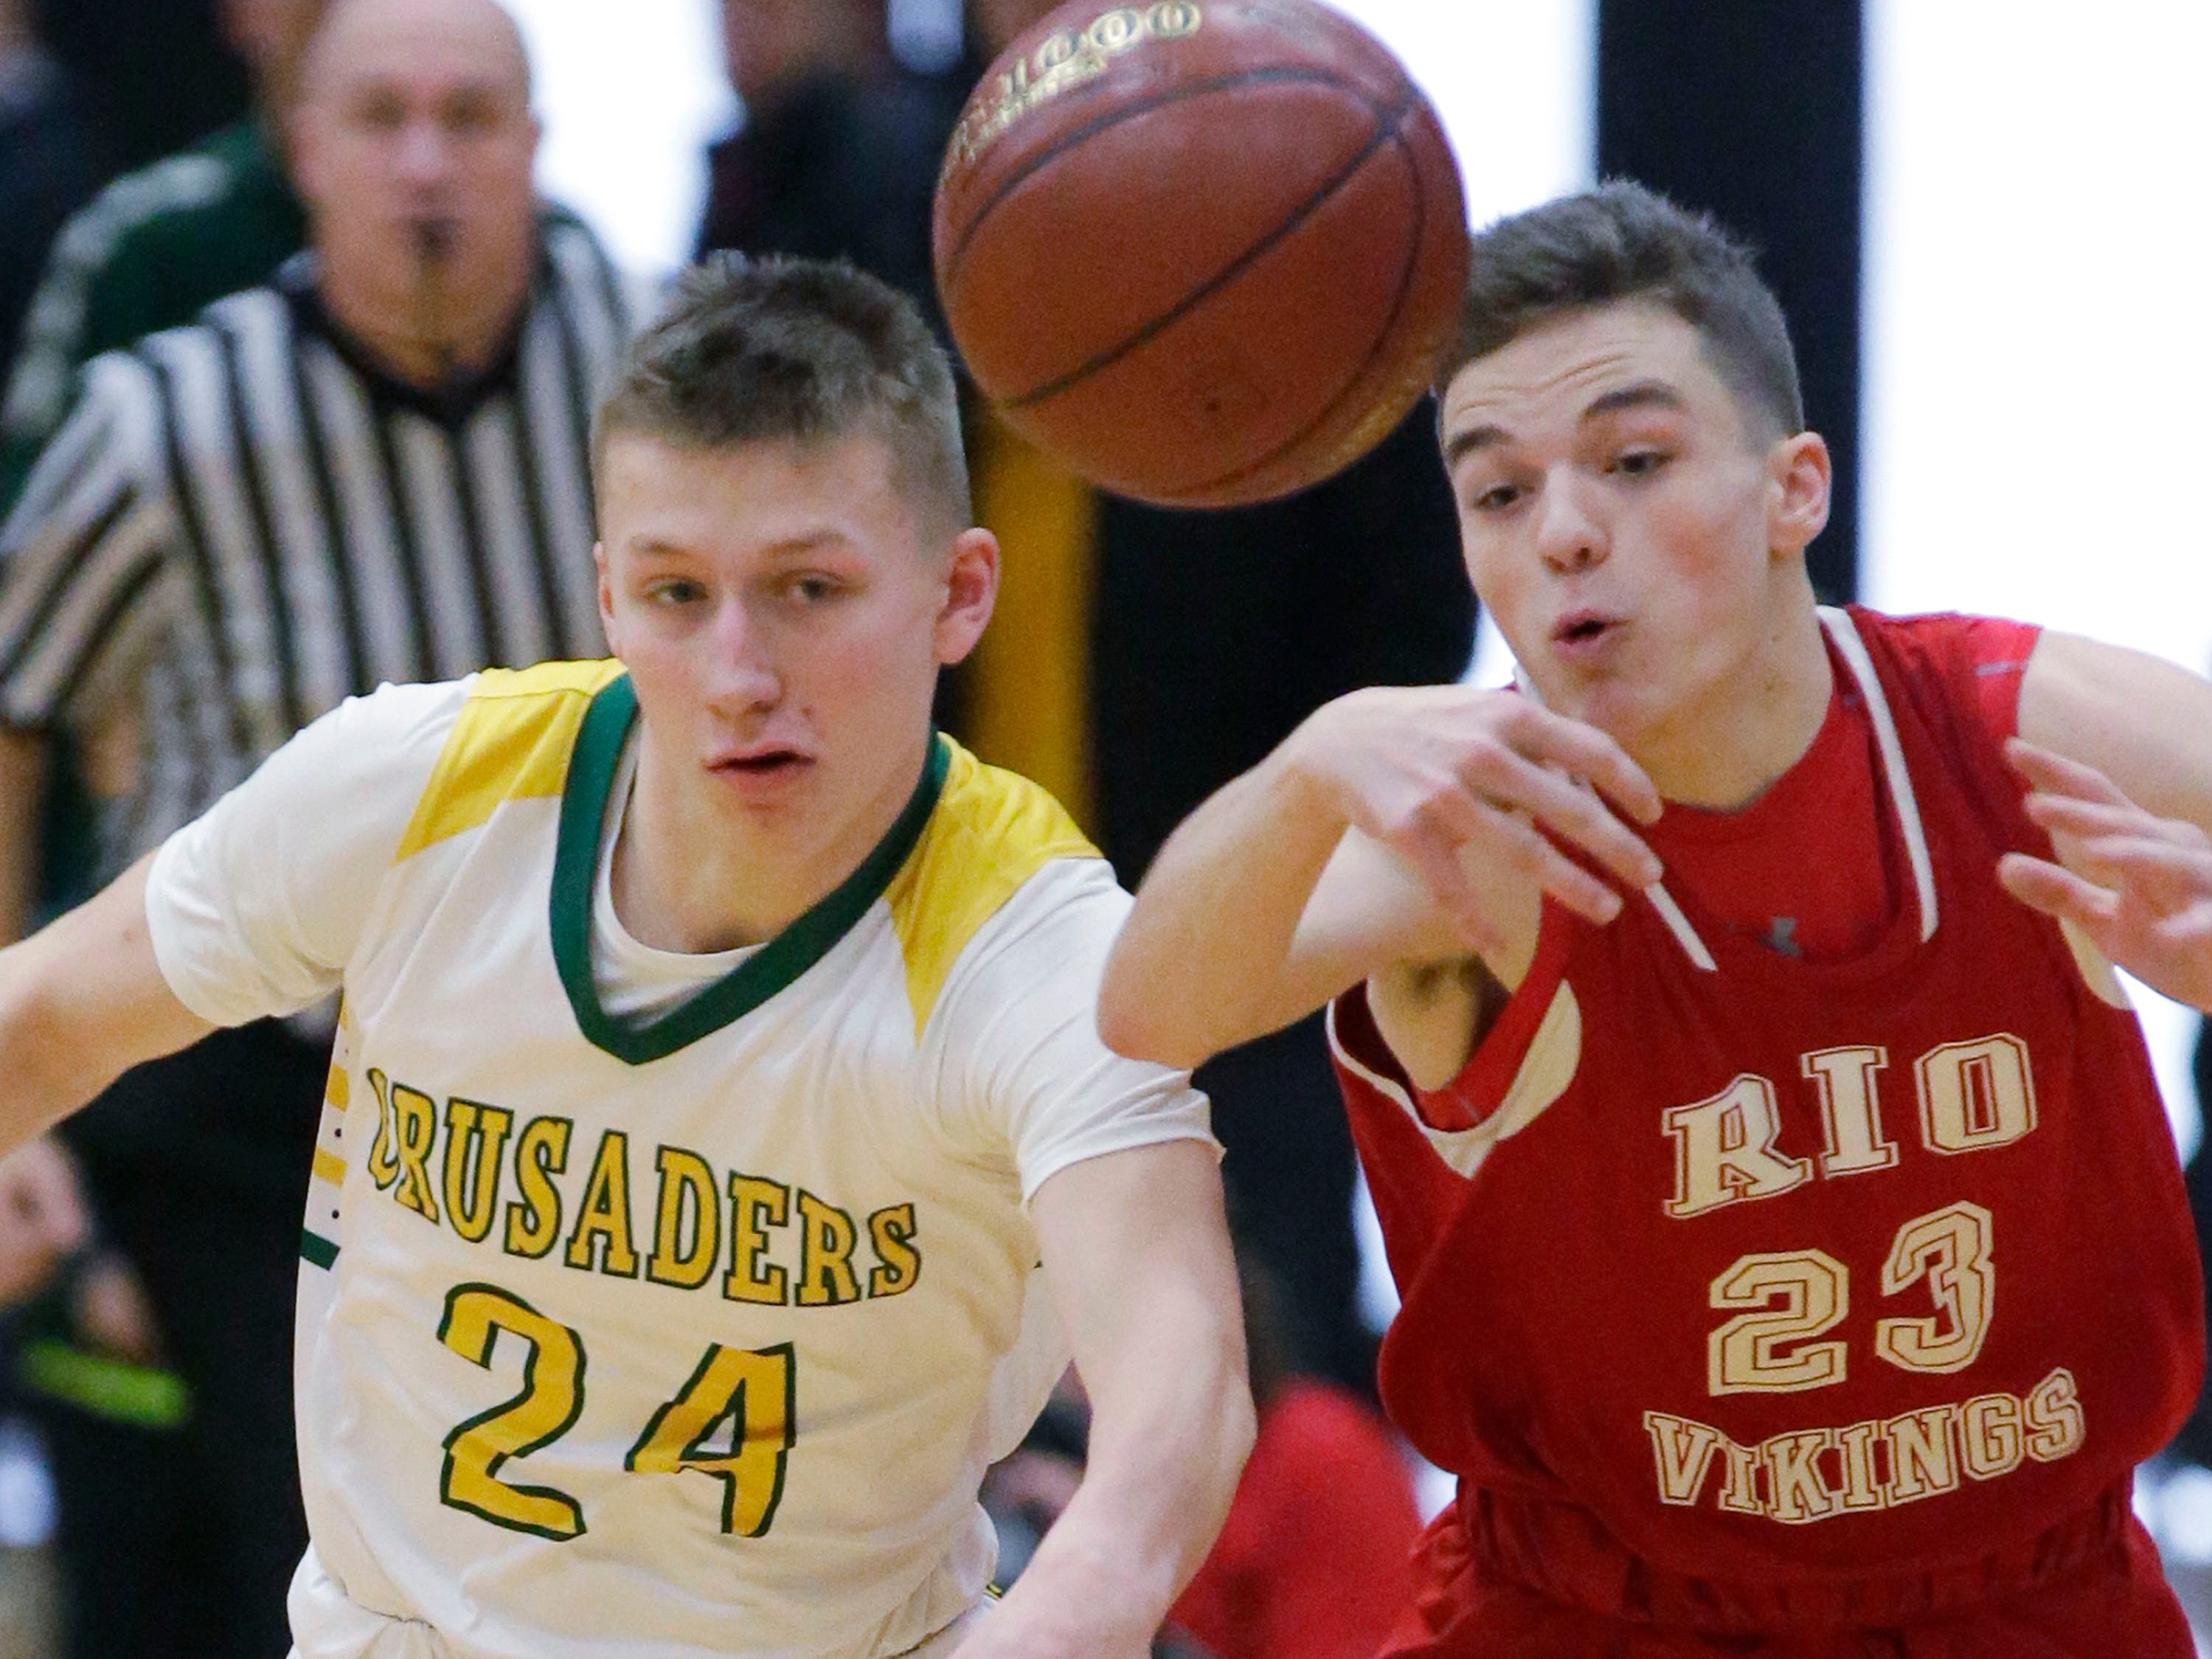 Sheboygan Lutheran's Casey Verhagen (24) chases the ball by Rio's Carson Richardson (23), during WIAA Div. 5 sectional action, Saturday, March 9, 2019, in West Bend, Wis.